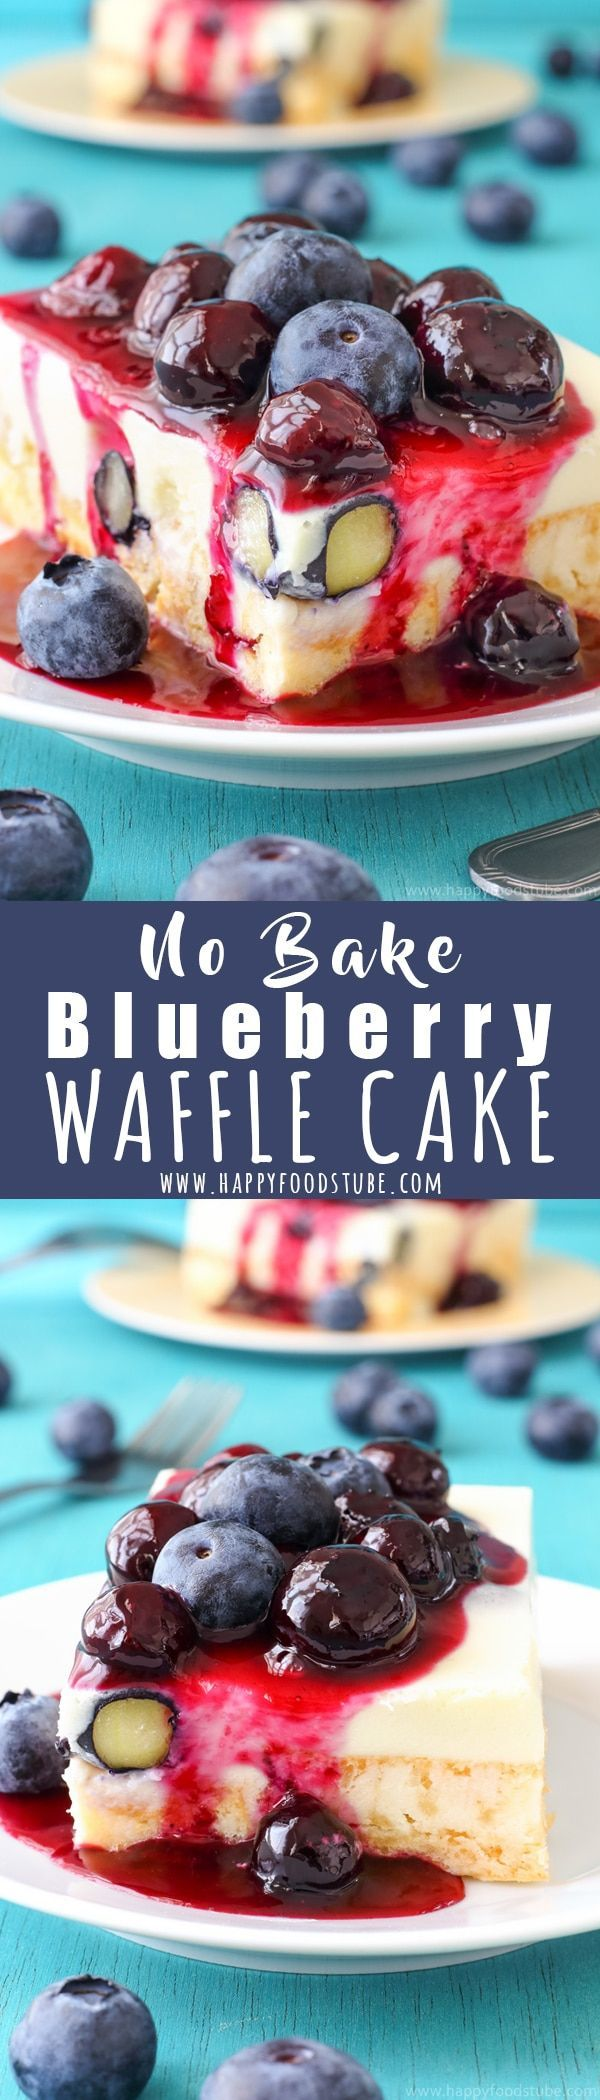 This White Chocolate Waffle Cake with Blueberries is our family favorite no bake dessert. Perfect homemade dessert recipe to satisfy your sweet tooth. Easy desserts to make at home without oven via @happyfoodstube